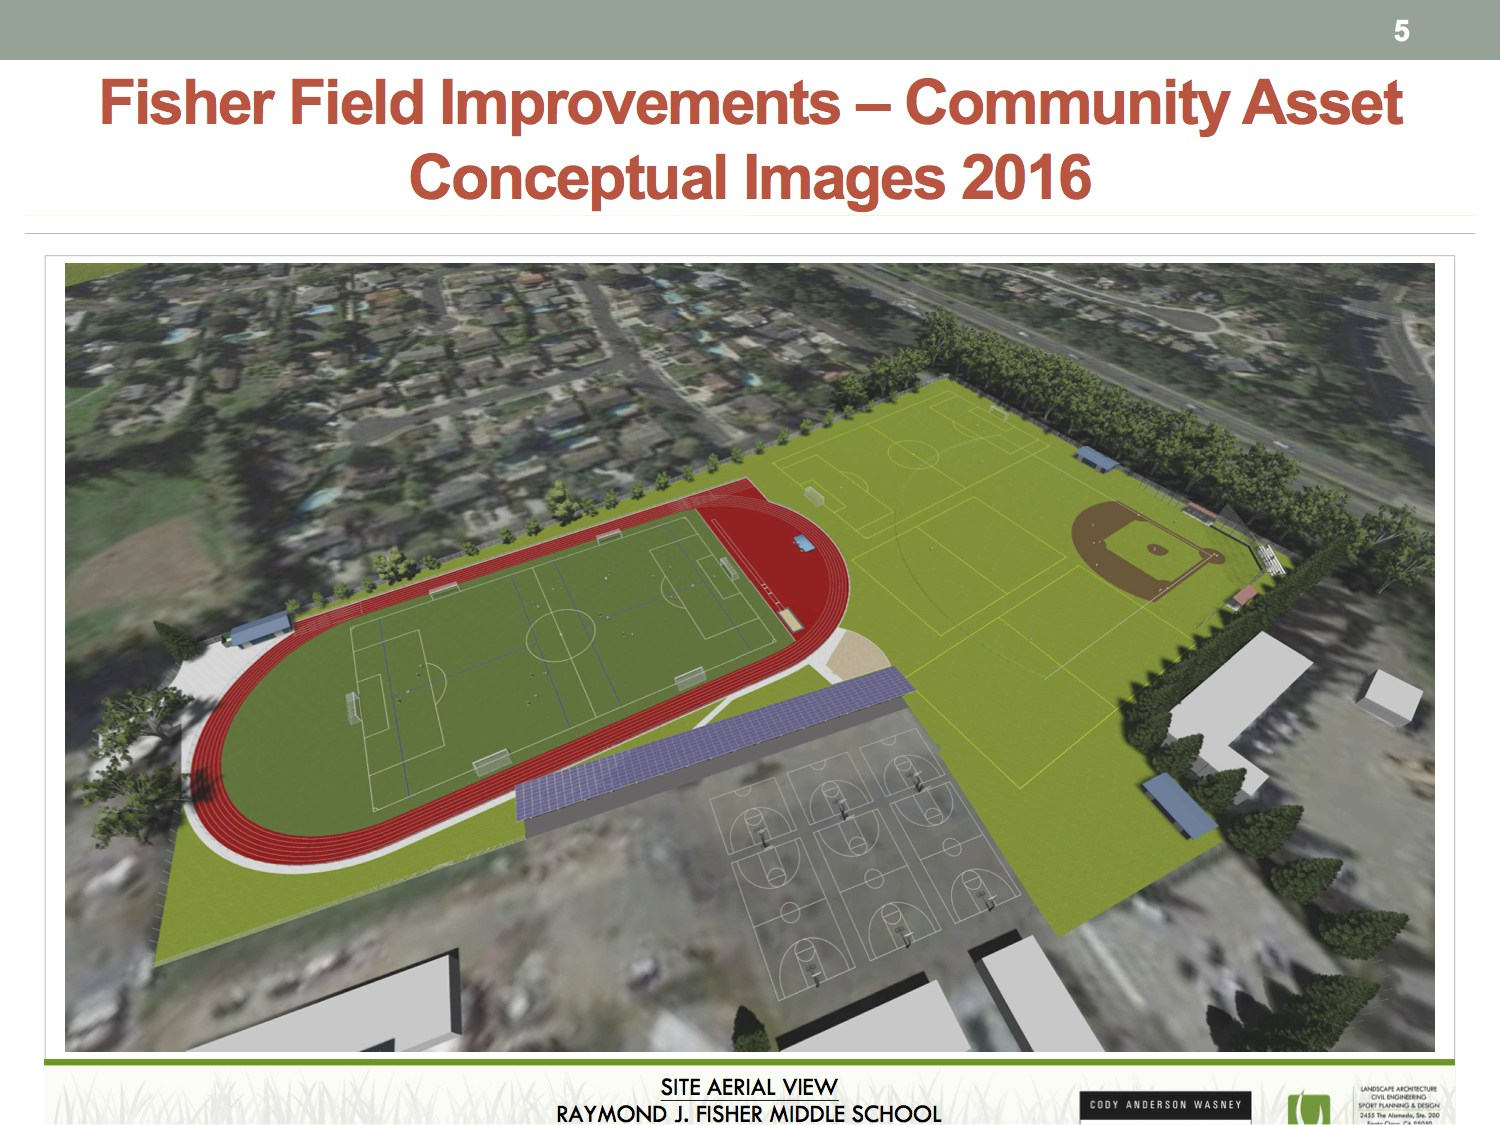 Fisher field image